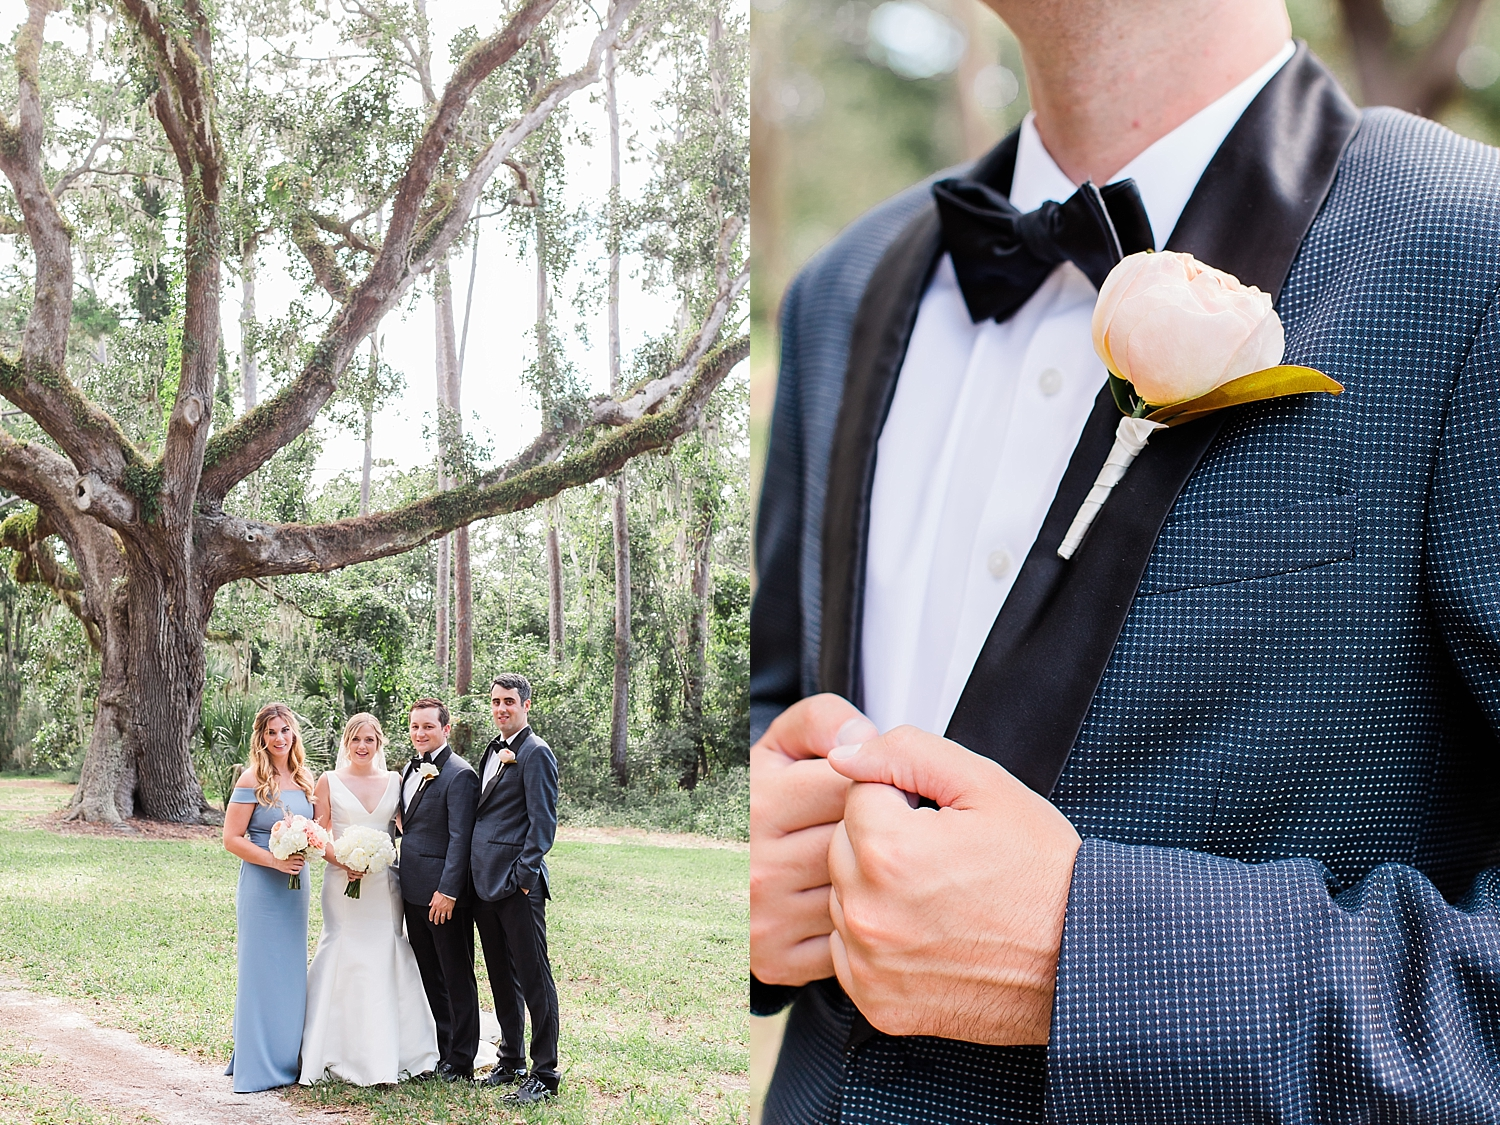 hilton-head-island-wedding-photographer-harbor-town-golf-links-jb-marie-photography